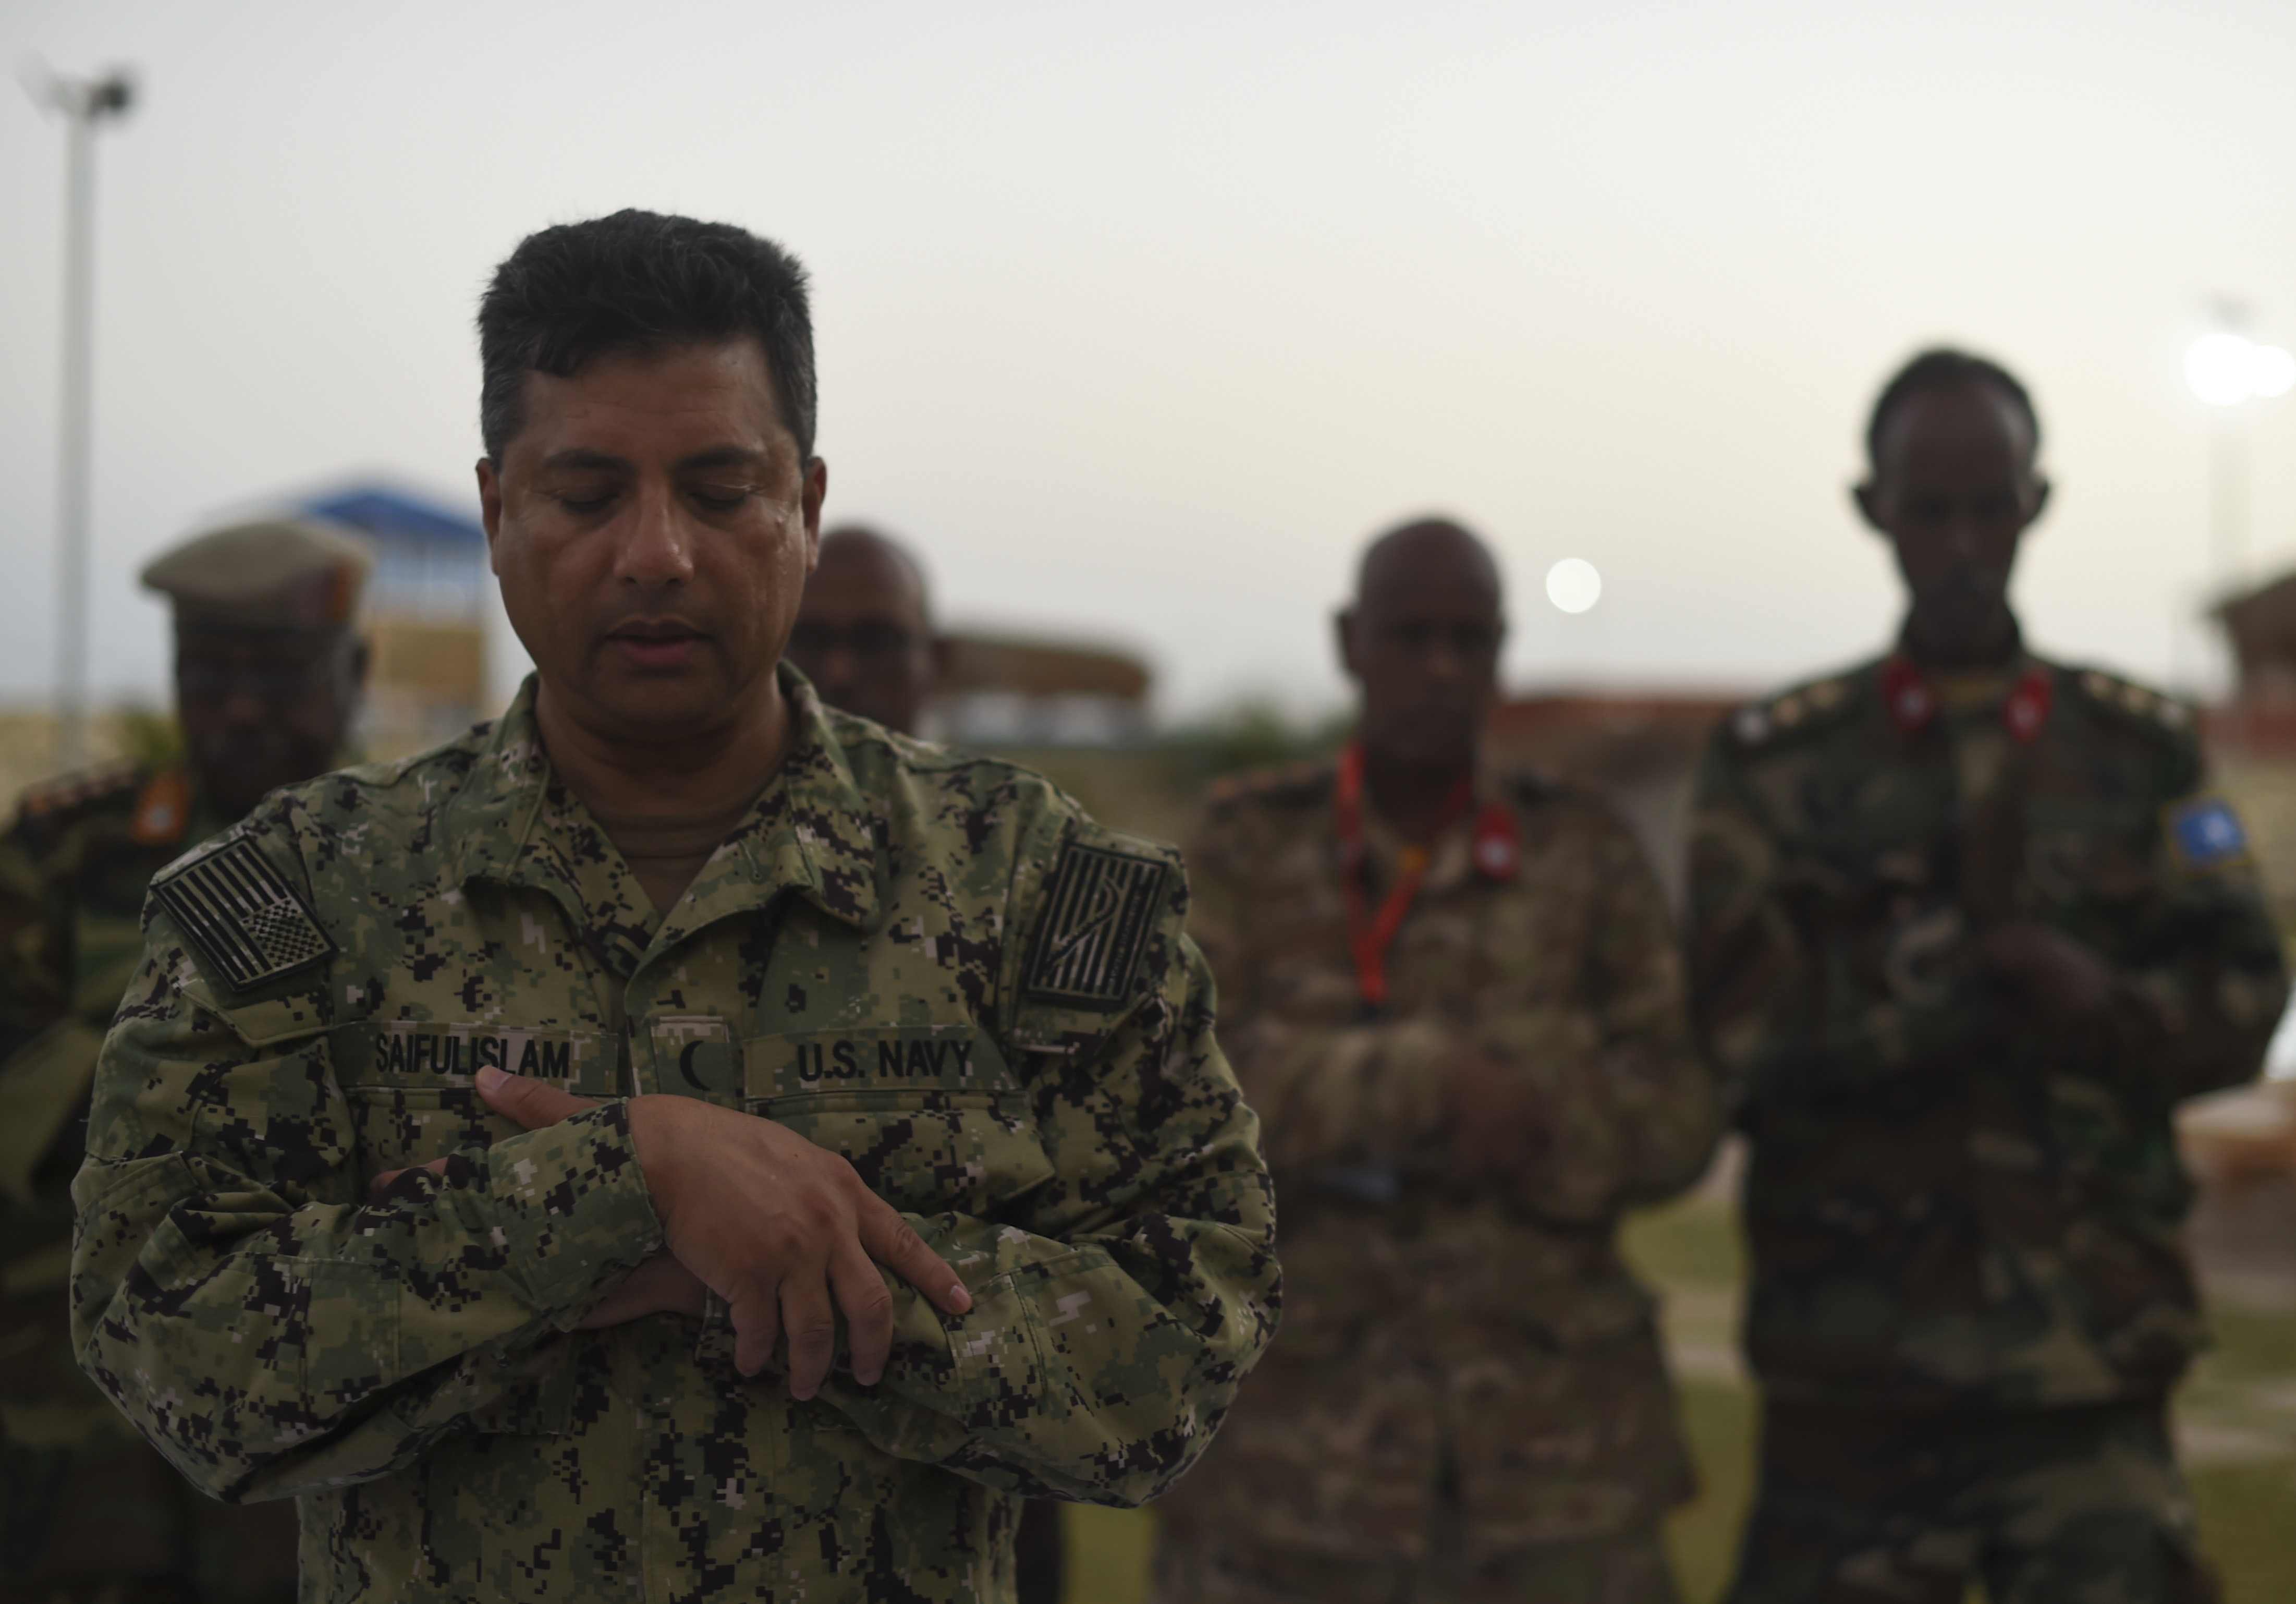 U.S. Navy Cmdr. Abuhena Saifulislam, U.S. Africa Command deputy command chaplain, leads a prayer before an Iftar with members of the Somali National Army at the Mogadishu International Airport, Mogadishu, Somalia, June 5, 2017. This was the first Iftar held between U.S. and SNA military personnel. Additionally, it was the first led by a U.S. Imam, who is a leader in the Islamic faith. (U.S. Air Force Photo by Staff Sgt. Eboni Prince)